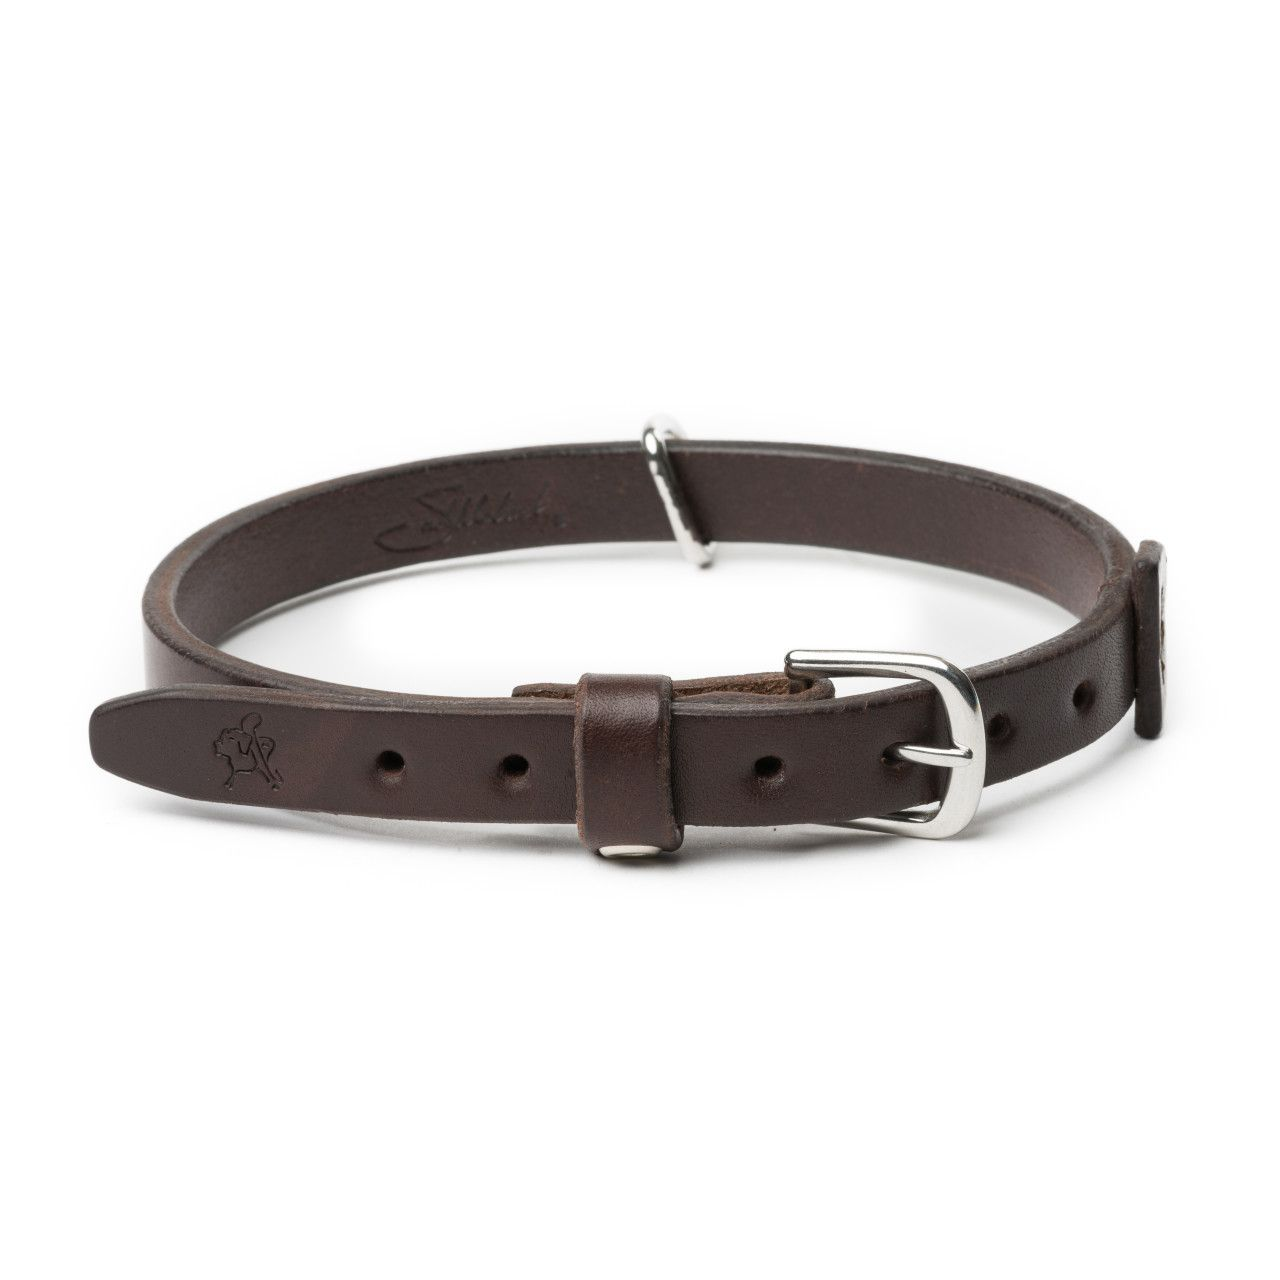 leather dog collar medium in dark coffee brown leather